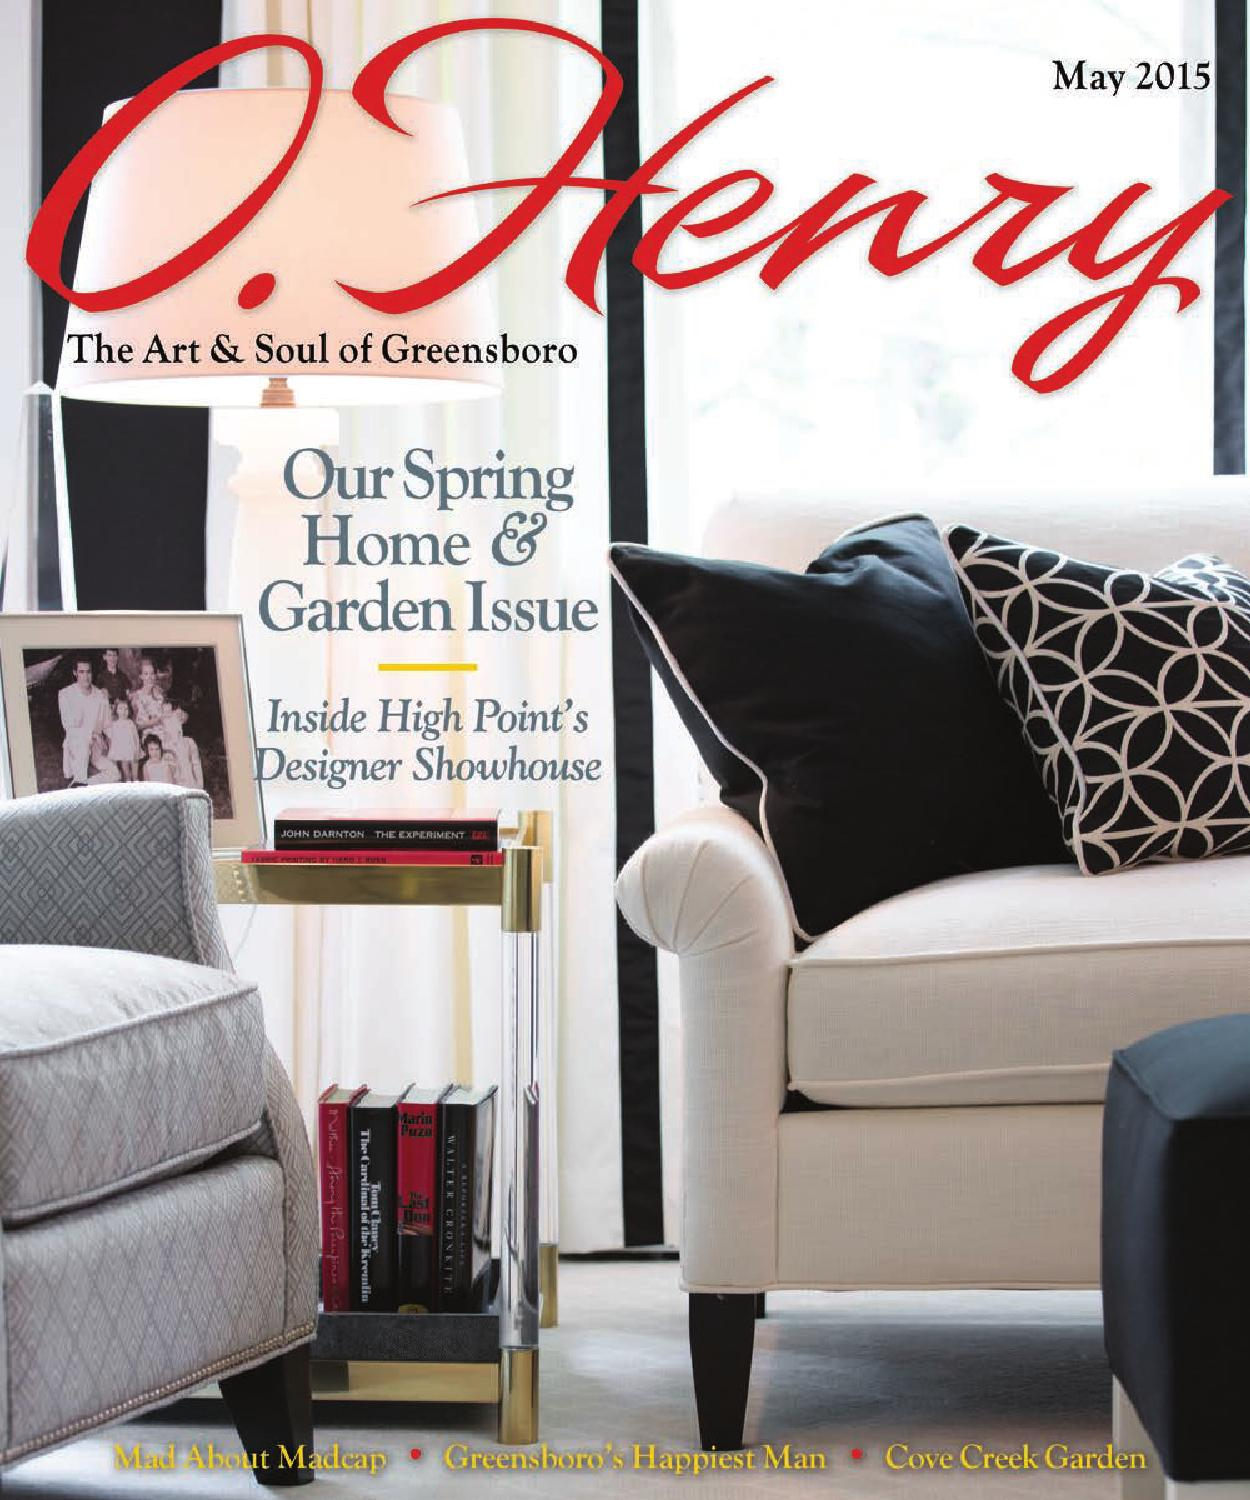 Ohenry May 2015 By Magazine Issuu Double Pole Single Throw Switch 20 Amp Alfrescoheatingcom